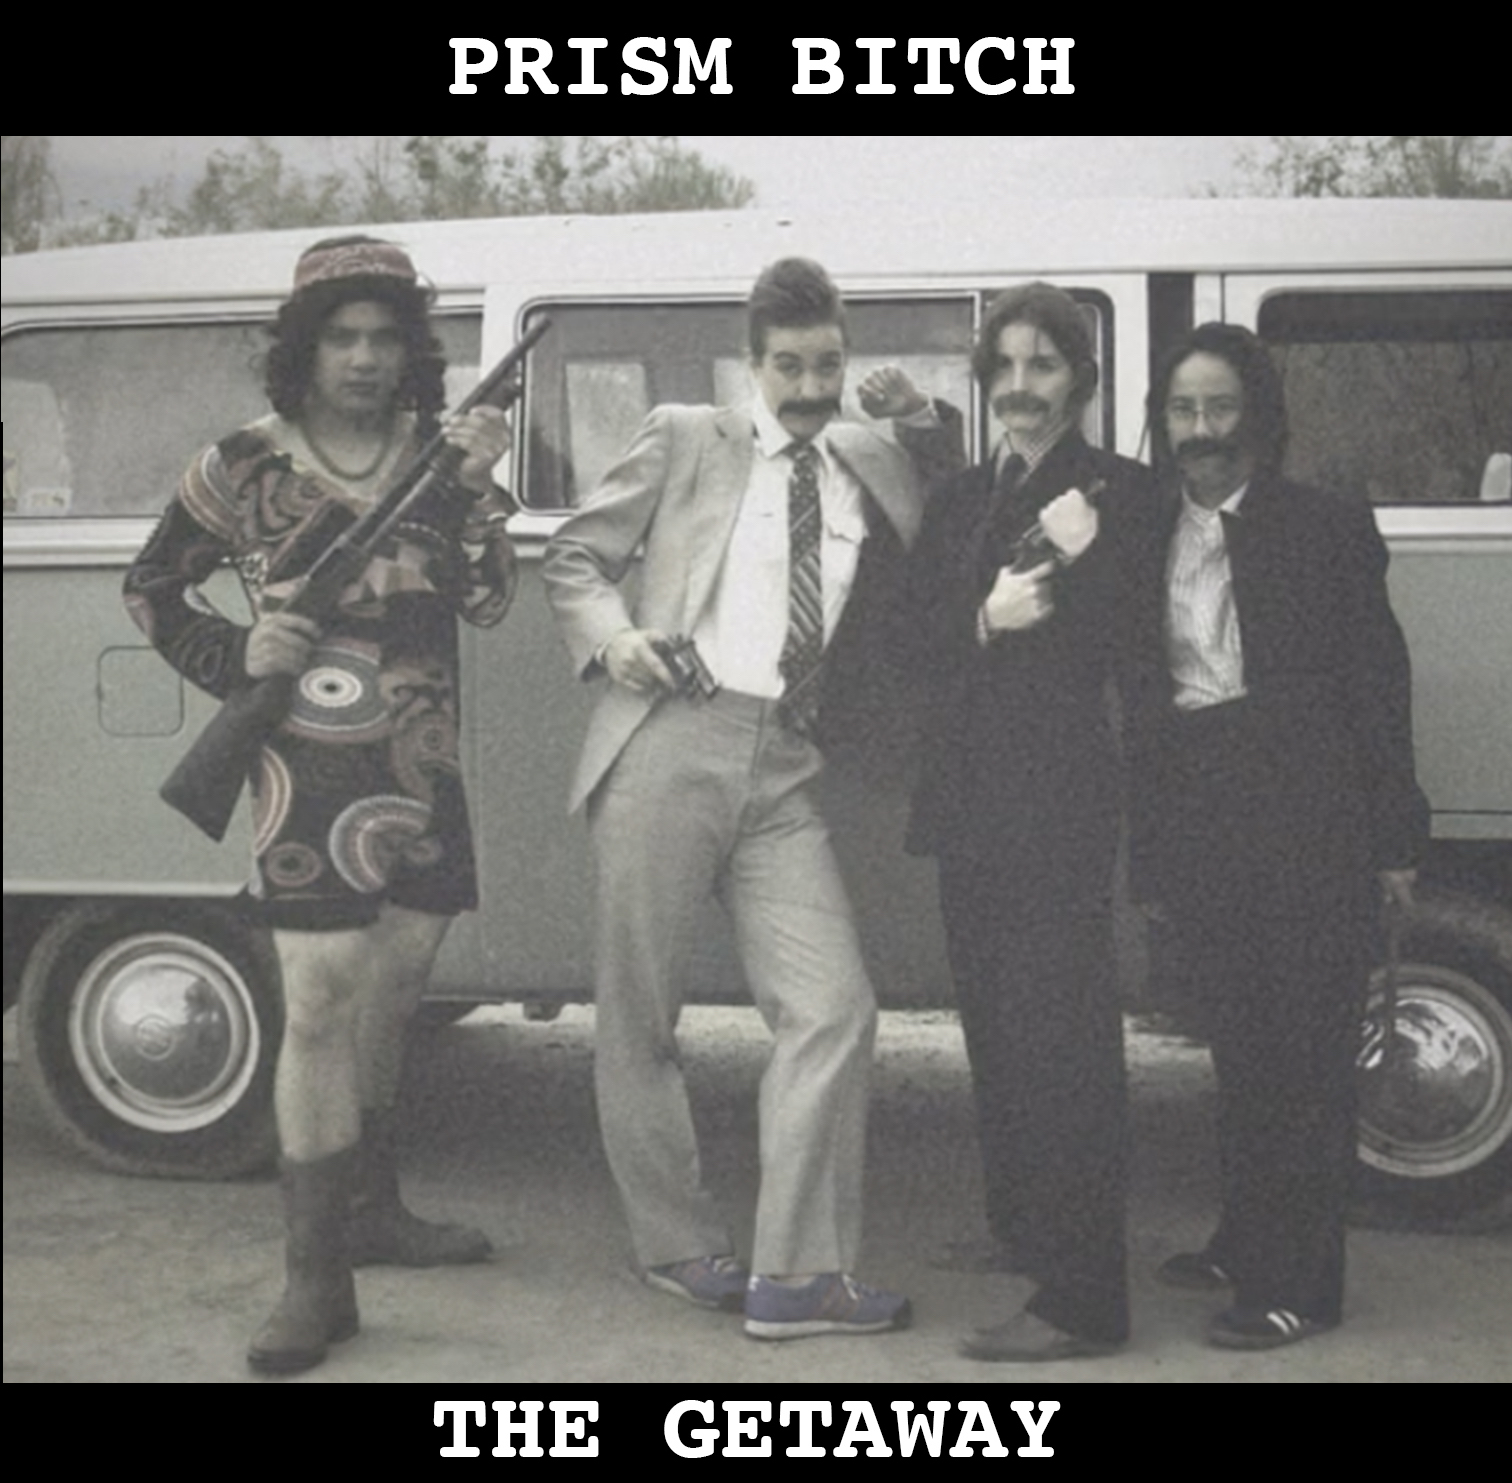 """The Getaway   """"The Getaway"""" was recorded at Push Drive Studios with Lee Sillery in Albuquerque, NM. Written and performed by Prism Bitch."""